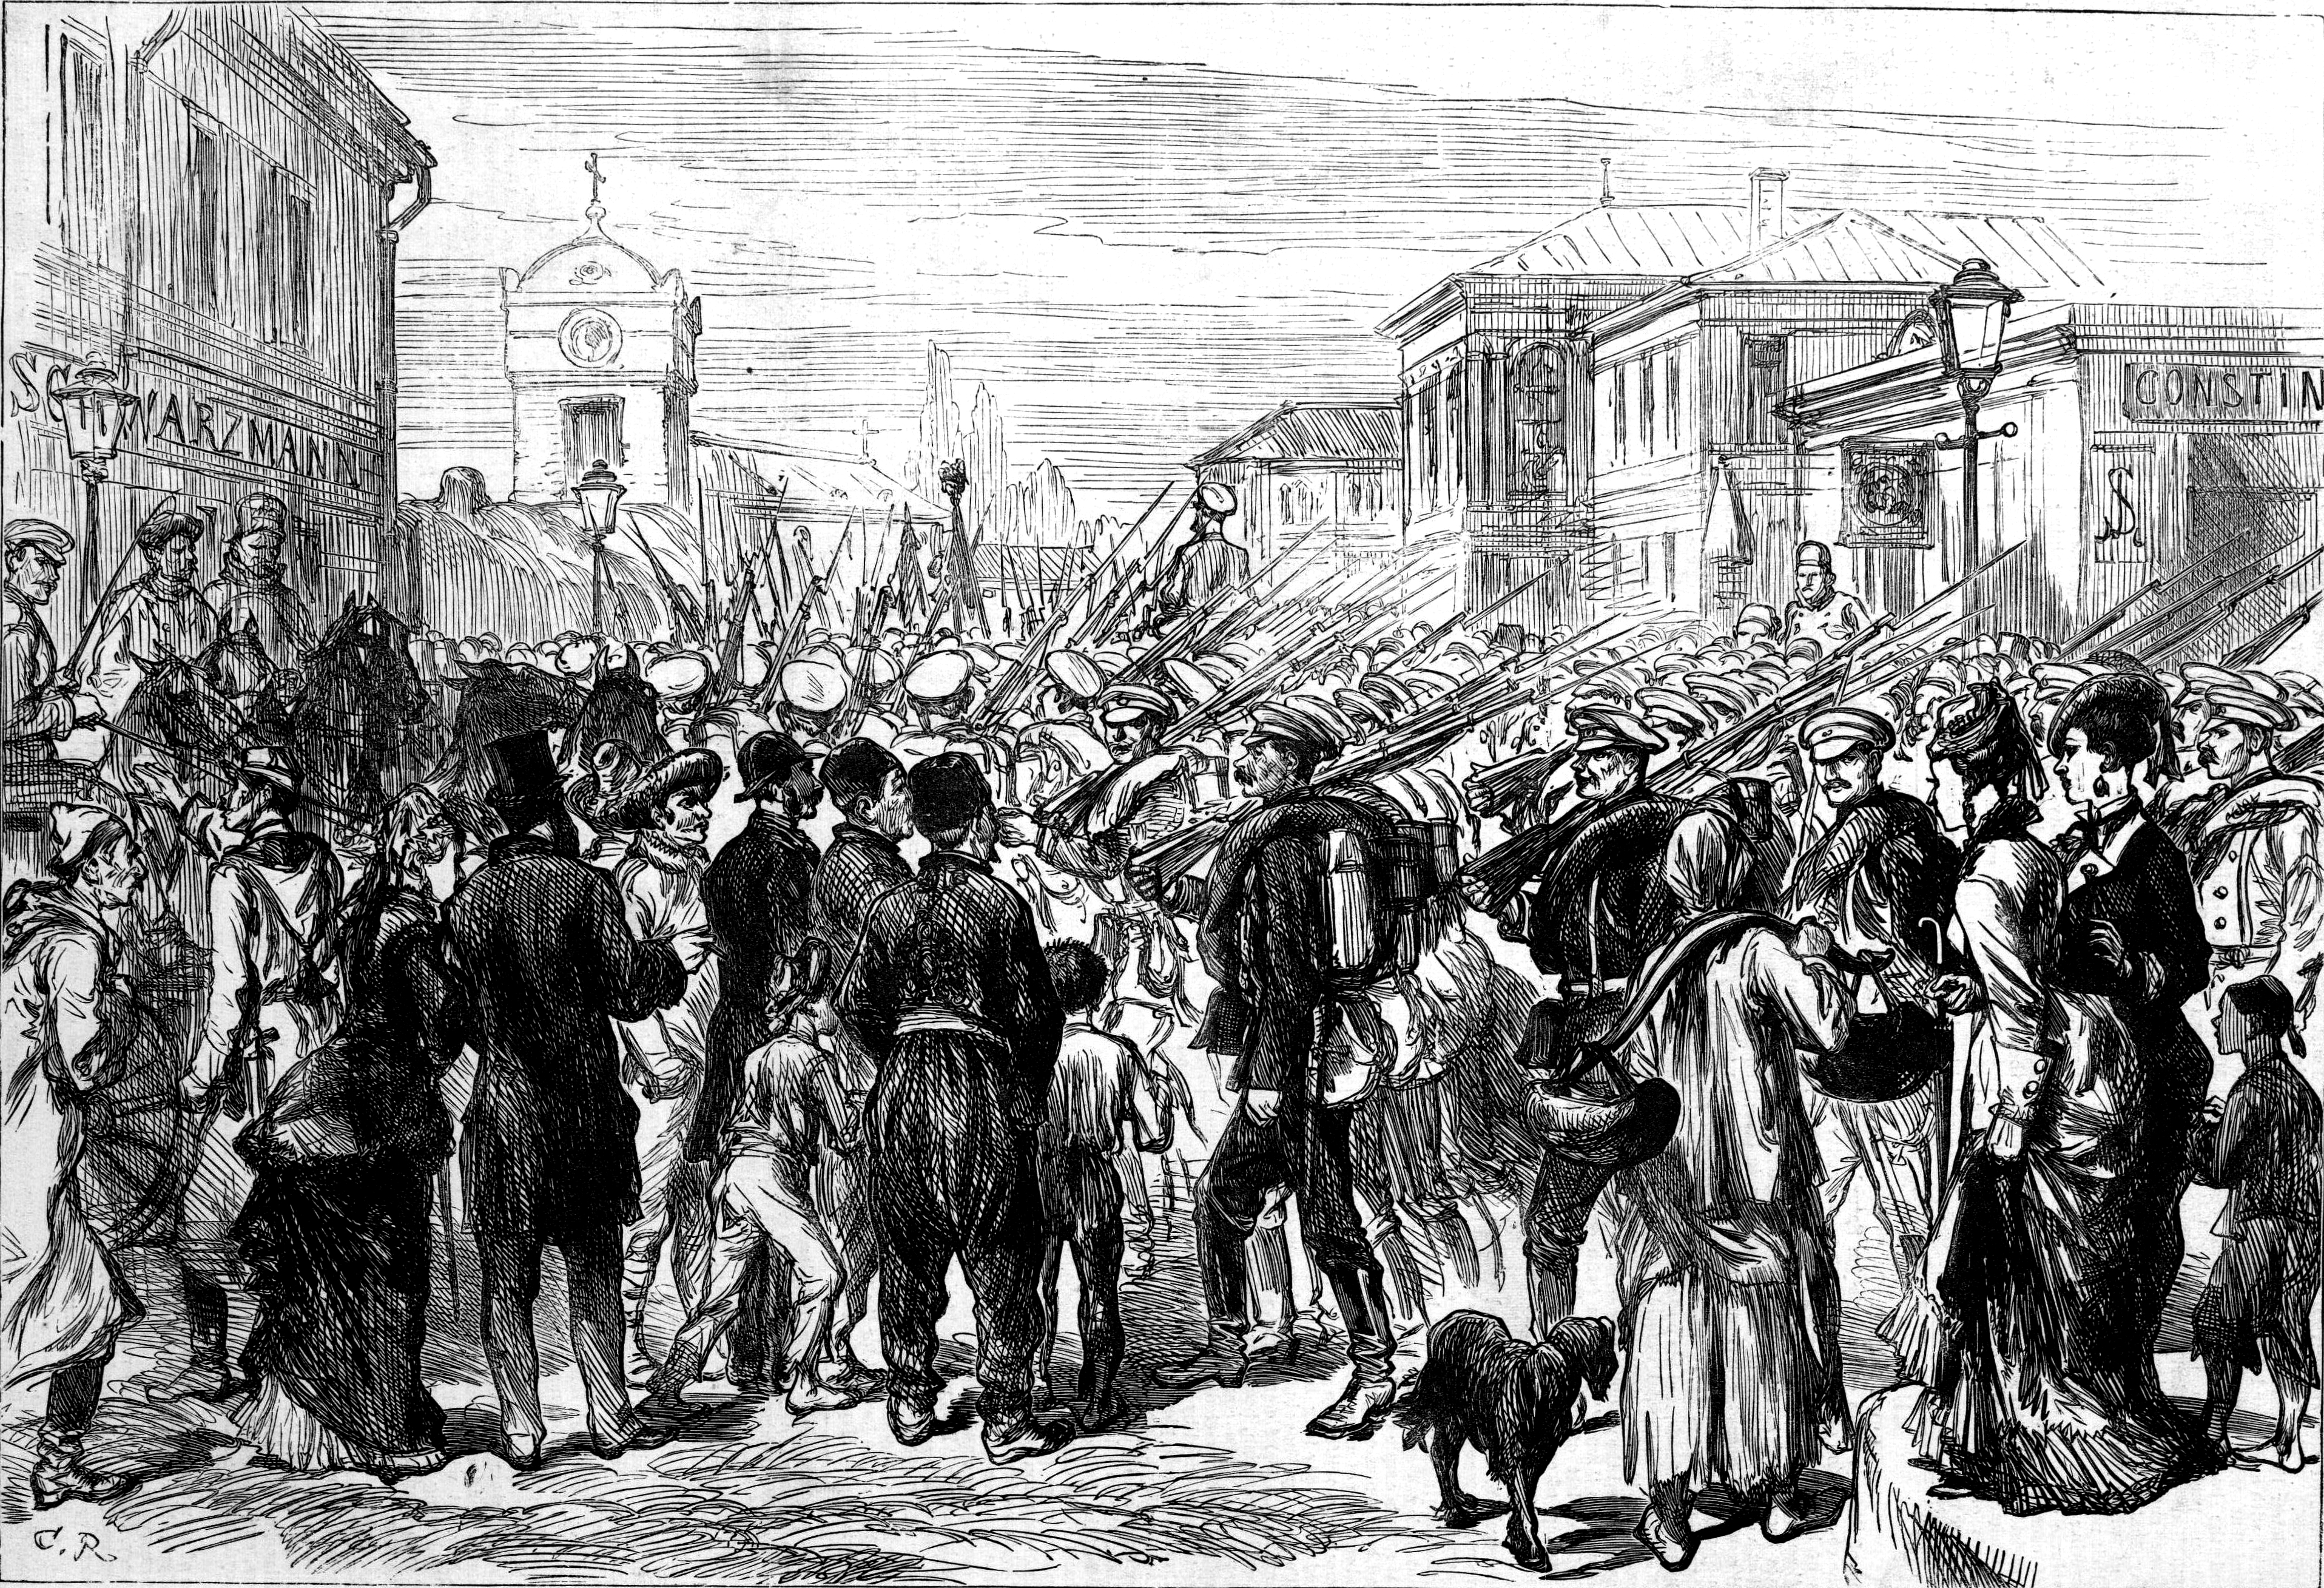 File:Russian Army in Bucharest, The Illustrated London News, 1877.jpg